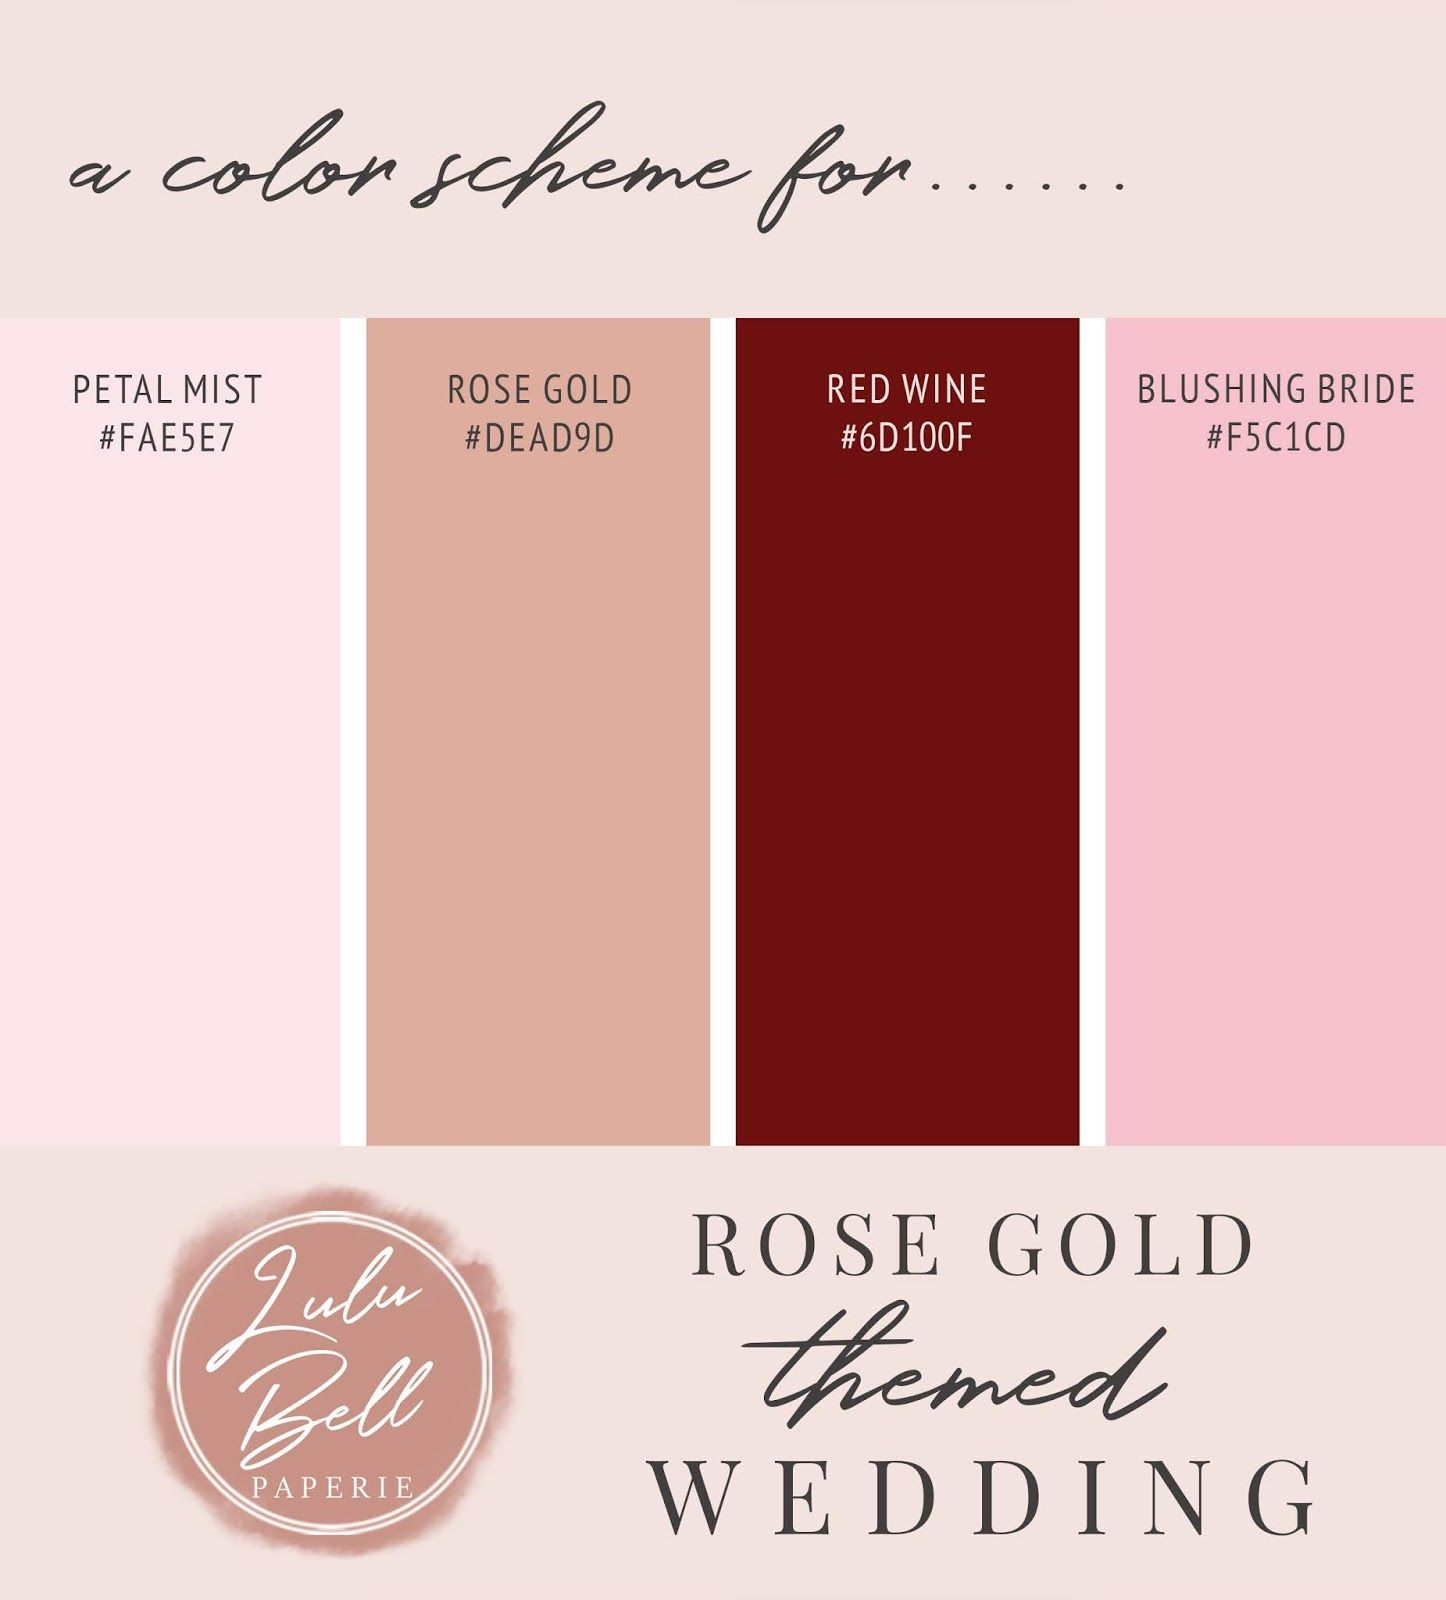 Burgundy Floral And Rose Gold Wedding Theme A Rose Gold Blush Pink Wine Red Burgundy Color Sc Gold Wedding Colors Wedding Rose Gold Theme Gold Wedding Theme